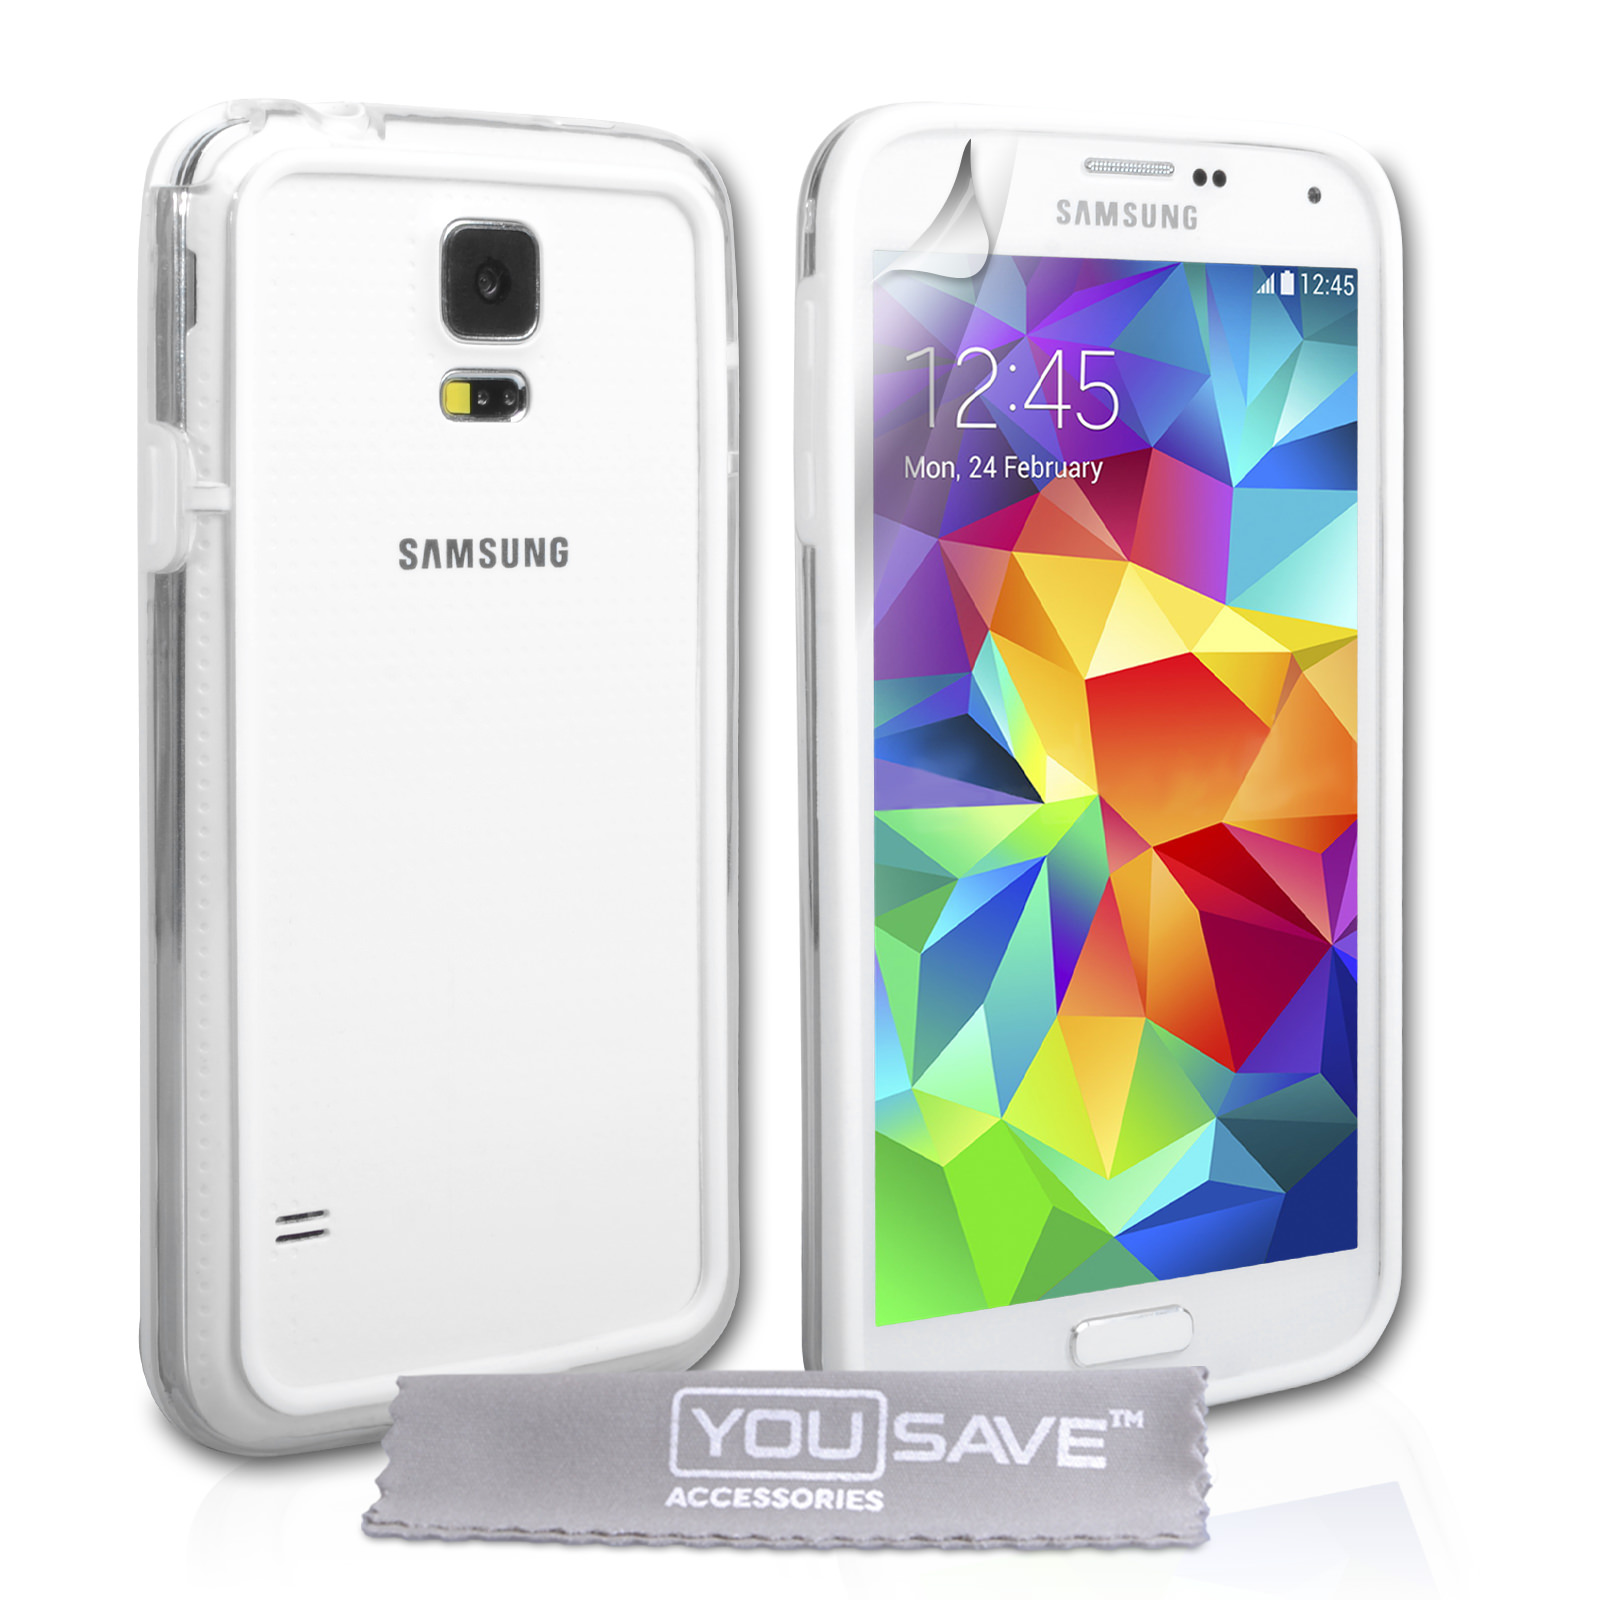 YouSave Accessories Samsung Galaxy S5 Bumper Case - Clear/White